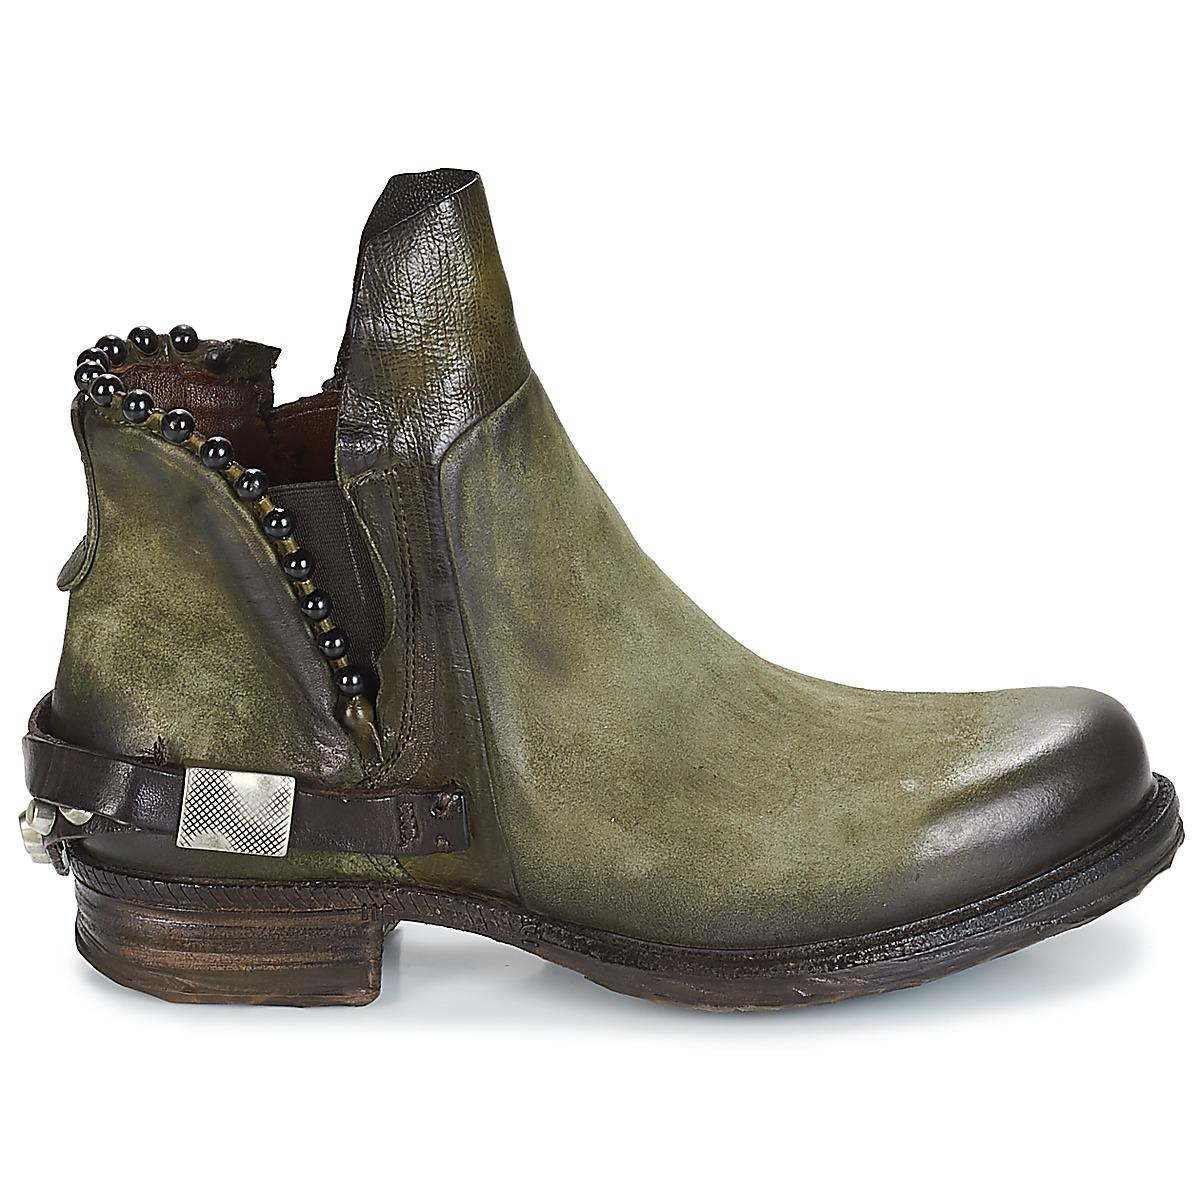 A.s.98 Saint 14 Mid Boots in Green